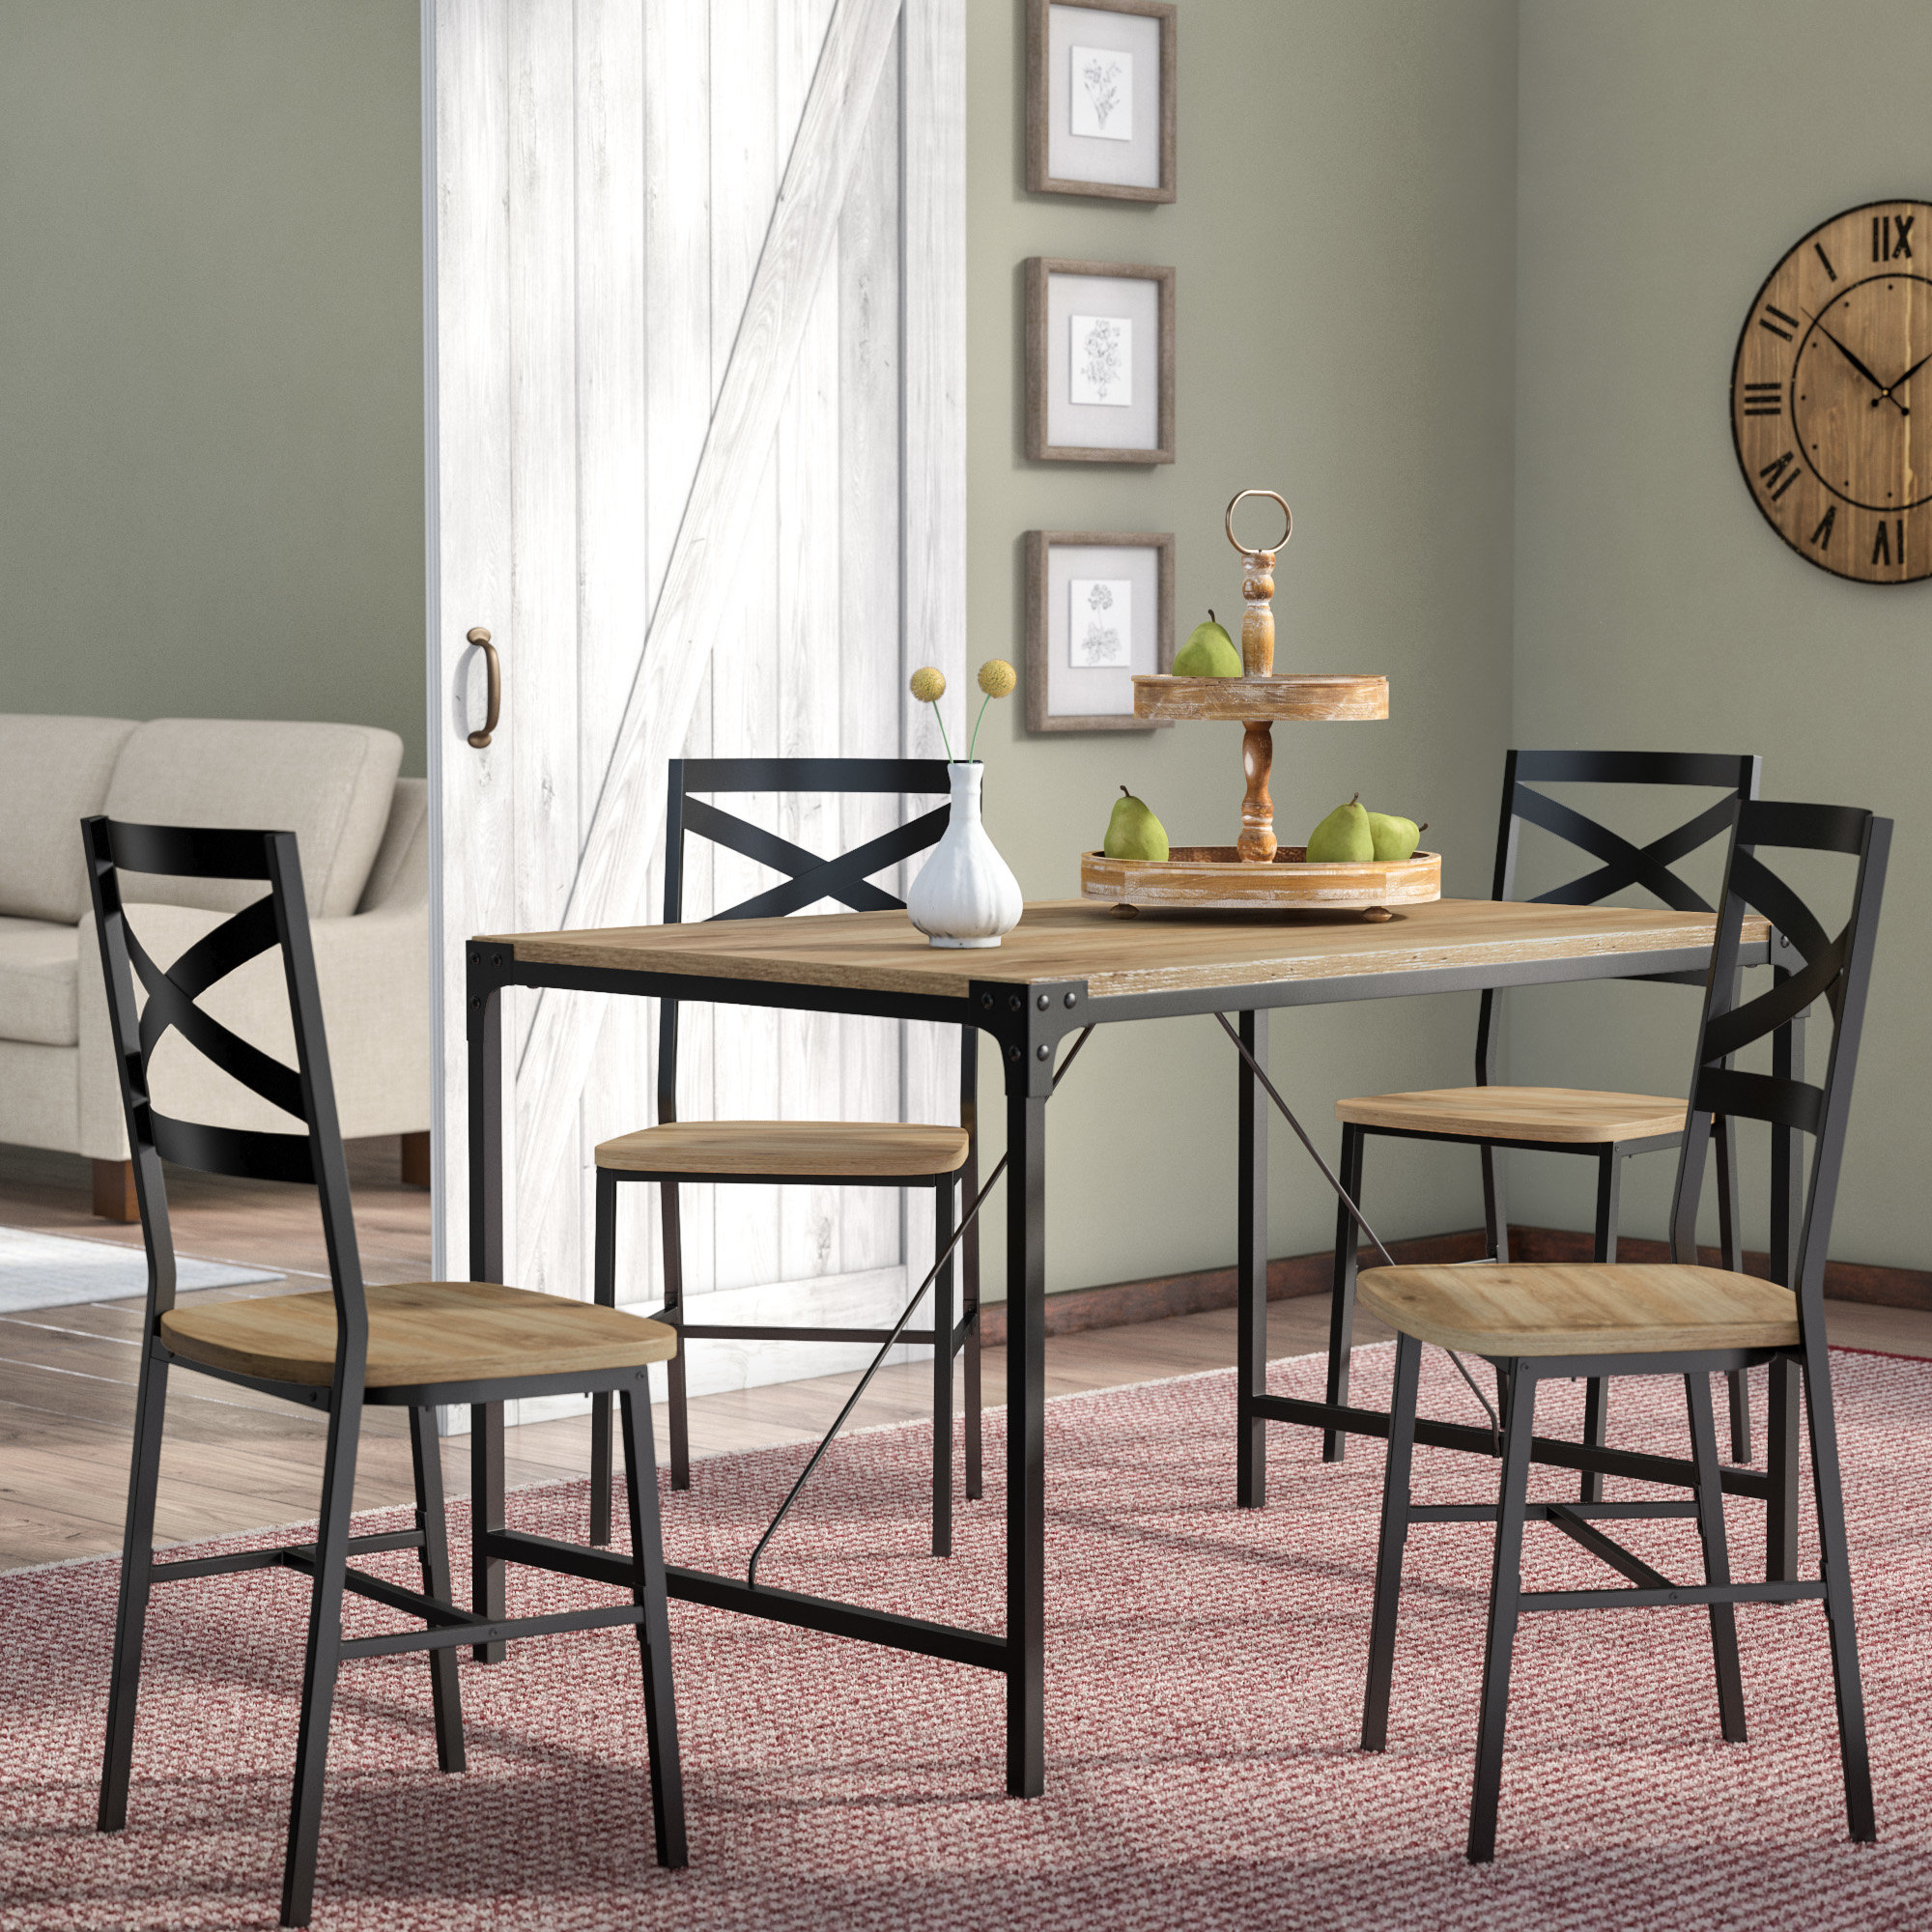 2018 Calla 5 Piece Dining Sets Inside Samantha 5 Piece Dining Set (Gallery 4 of 20)